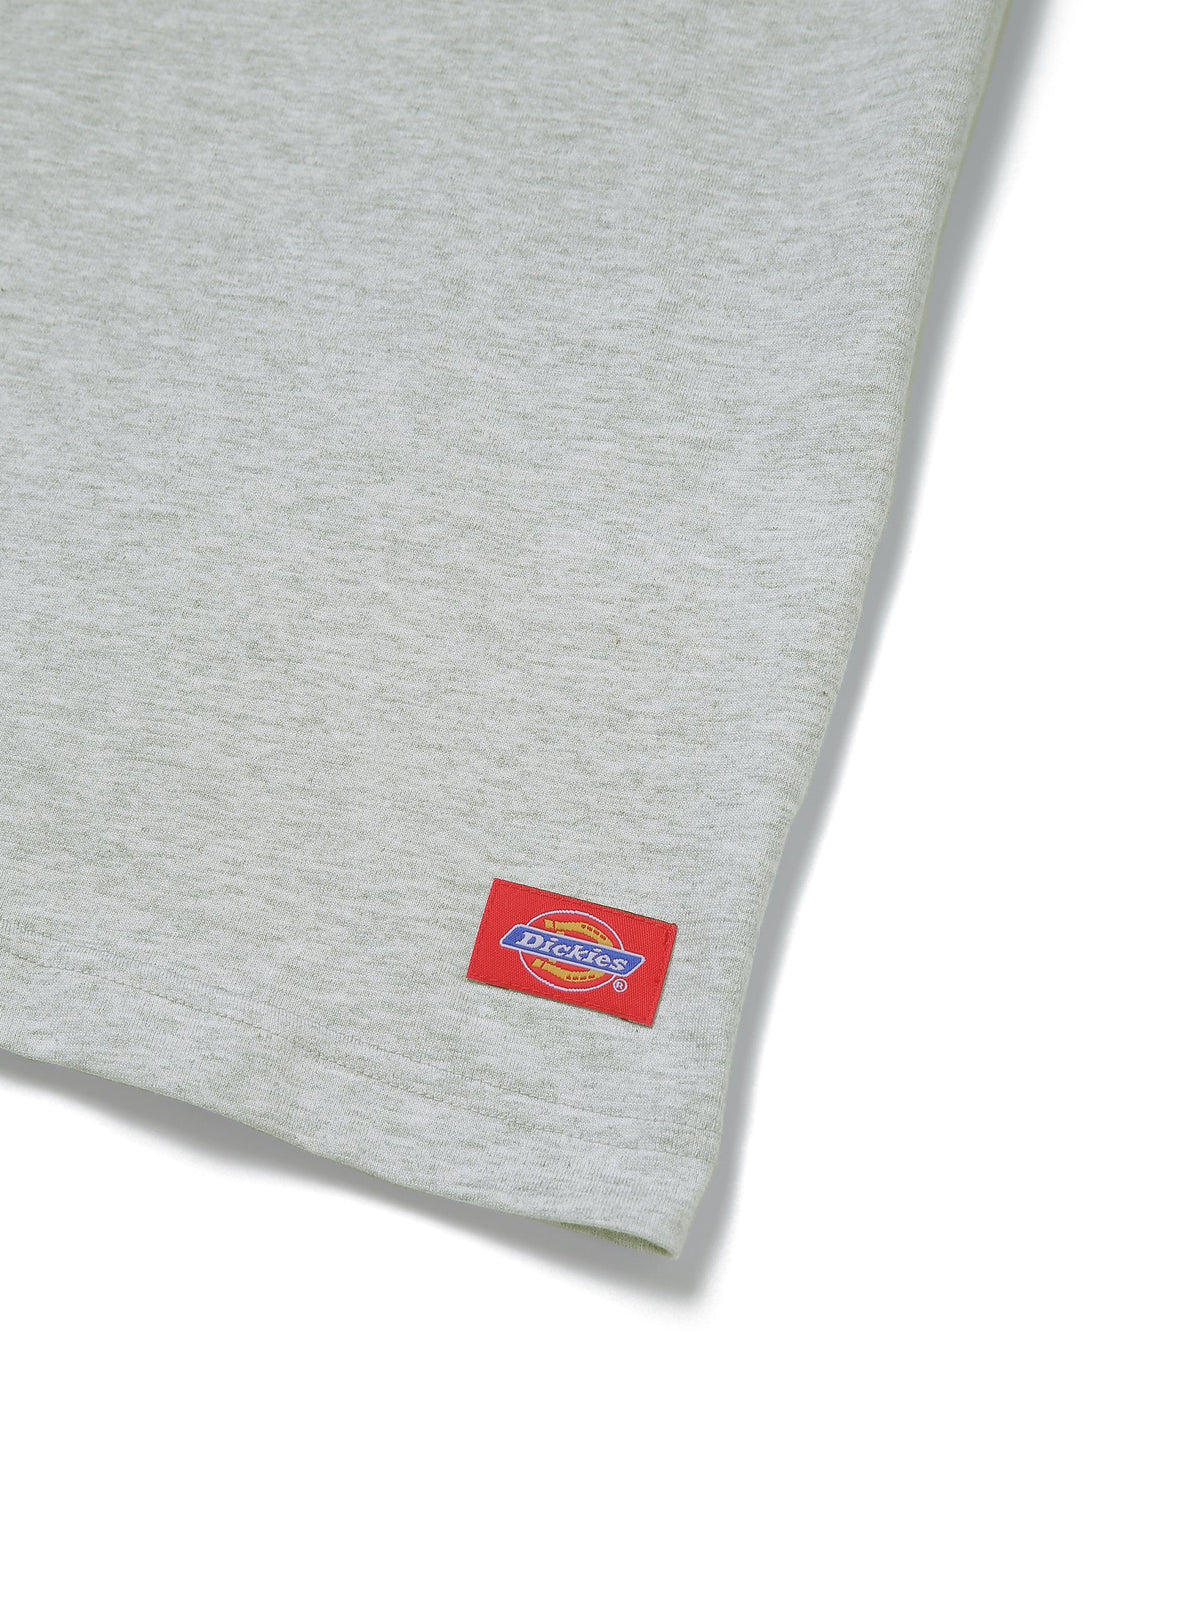 TNT Dickies Pocket Tee